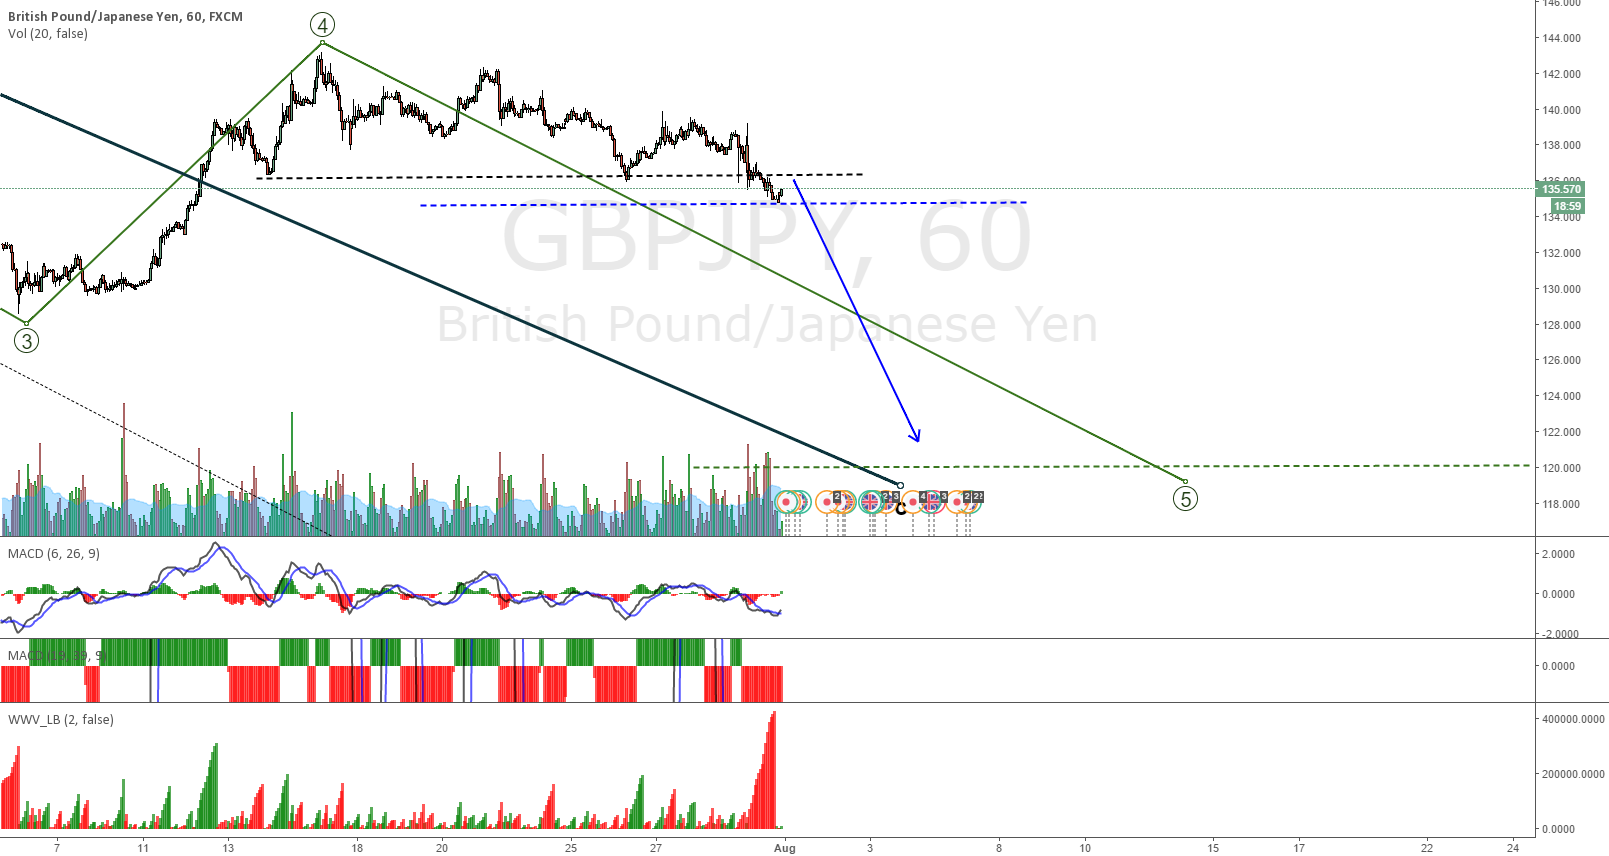 GBPJPY wait for the retest on low volume